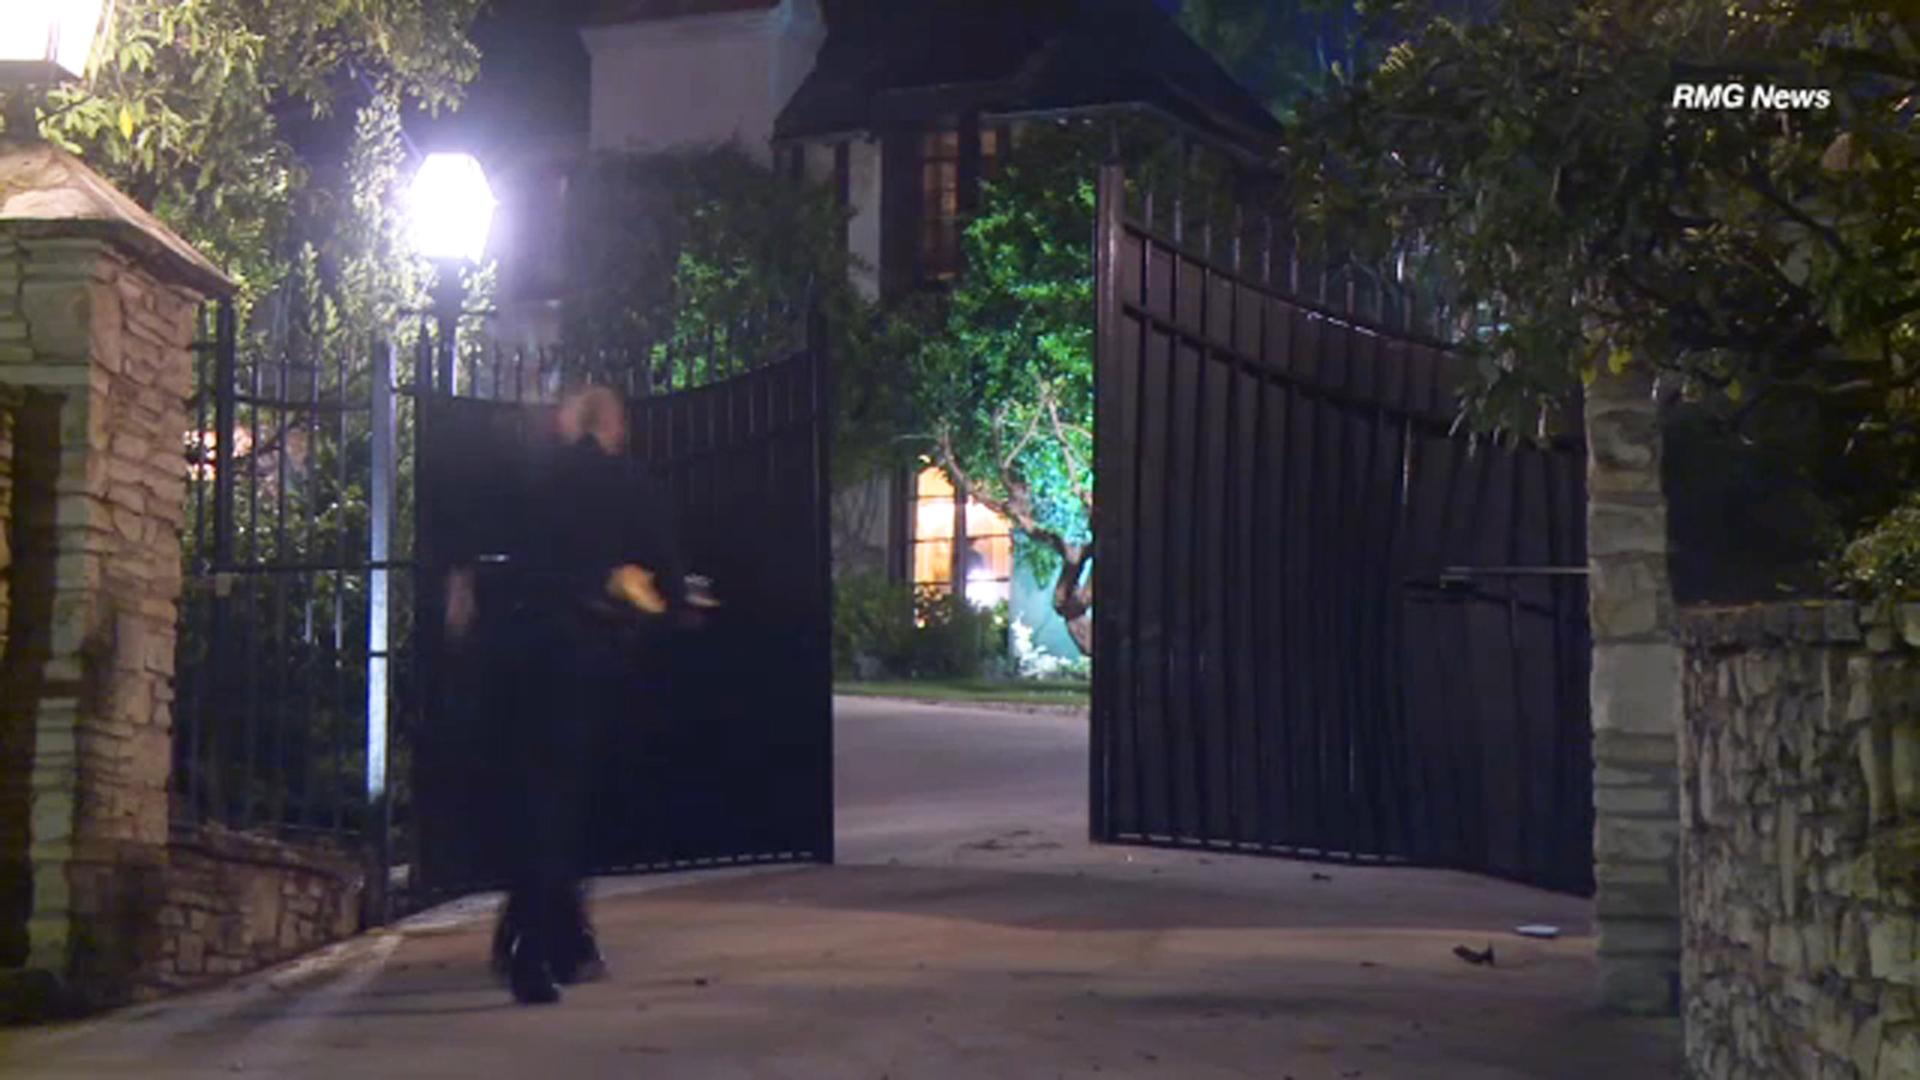 A 1,000-pound safe was stolen during a late-night break-in at a multimillion-dollar mansion in the Holmby Hills neighborhood of Los Angeles on Thursday, Jan. 31, 2019.